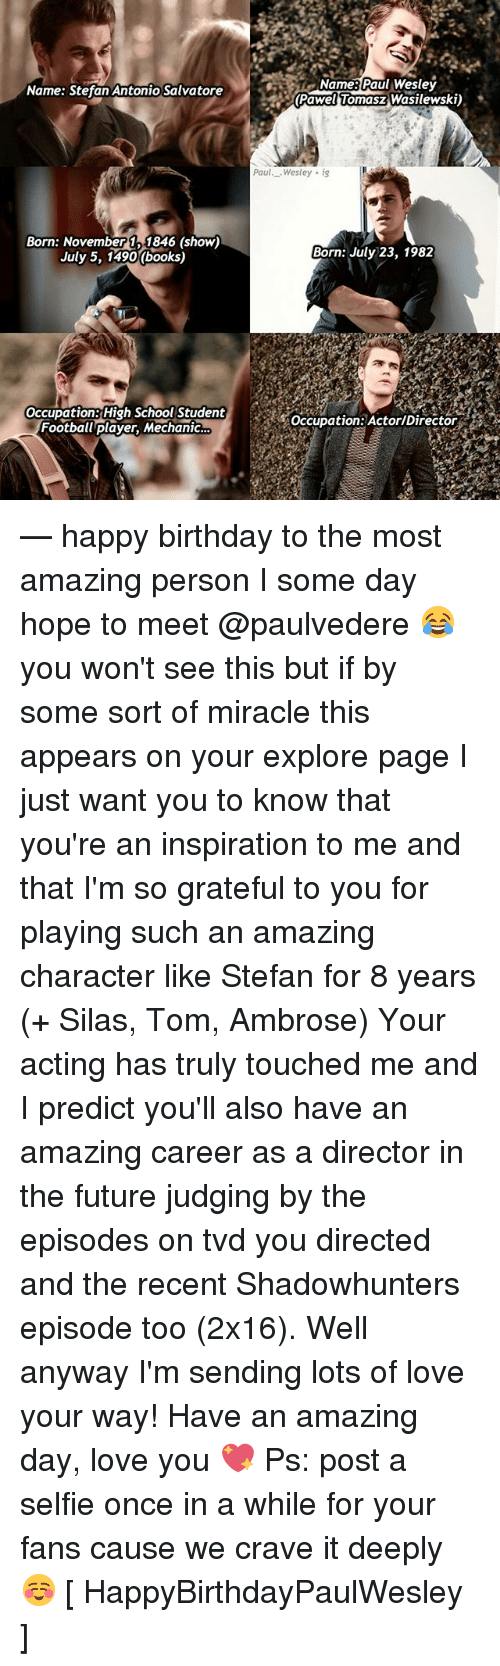 Birthday, Books, and Football: Name Paul Weslev  Pawel Tomasz Wasilewski)  Name: Stefan Antonio Salvatore  Paul._ Wesley ig  Born: November 1, 1846 (show)  July 5, 1490 (books)  Born: July 23, 1982  Occupation: High School Student  Football player, Mechanic  Occupation:ActorlDirector — happy birthday to the most amazing person I some day hope to meet @paulvedere 😂 you won't see this but if by some sort of miracle this appears on your explore page I just want you to know that you're an inspiration to me and that I'm so grateful to you for playing such an amazing character like Stefan for 8 years (+ Silas, Tom, Ambrose) Your acting has truly touched me and I predict you'll also have an amazing career as a director in the future judging by the episodes on tvd you directed and the recent Shadowhunters episode too (2x16). Well anyway I'm sending lots of love your way! Have an amazing day, love you 💖 Ps: post a selfie once in a while for your fans cause we crave it deeply ☺️ [ HappyBirthdayPaulWesley ]